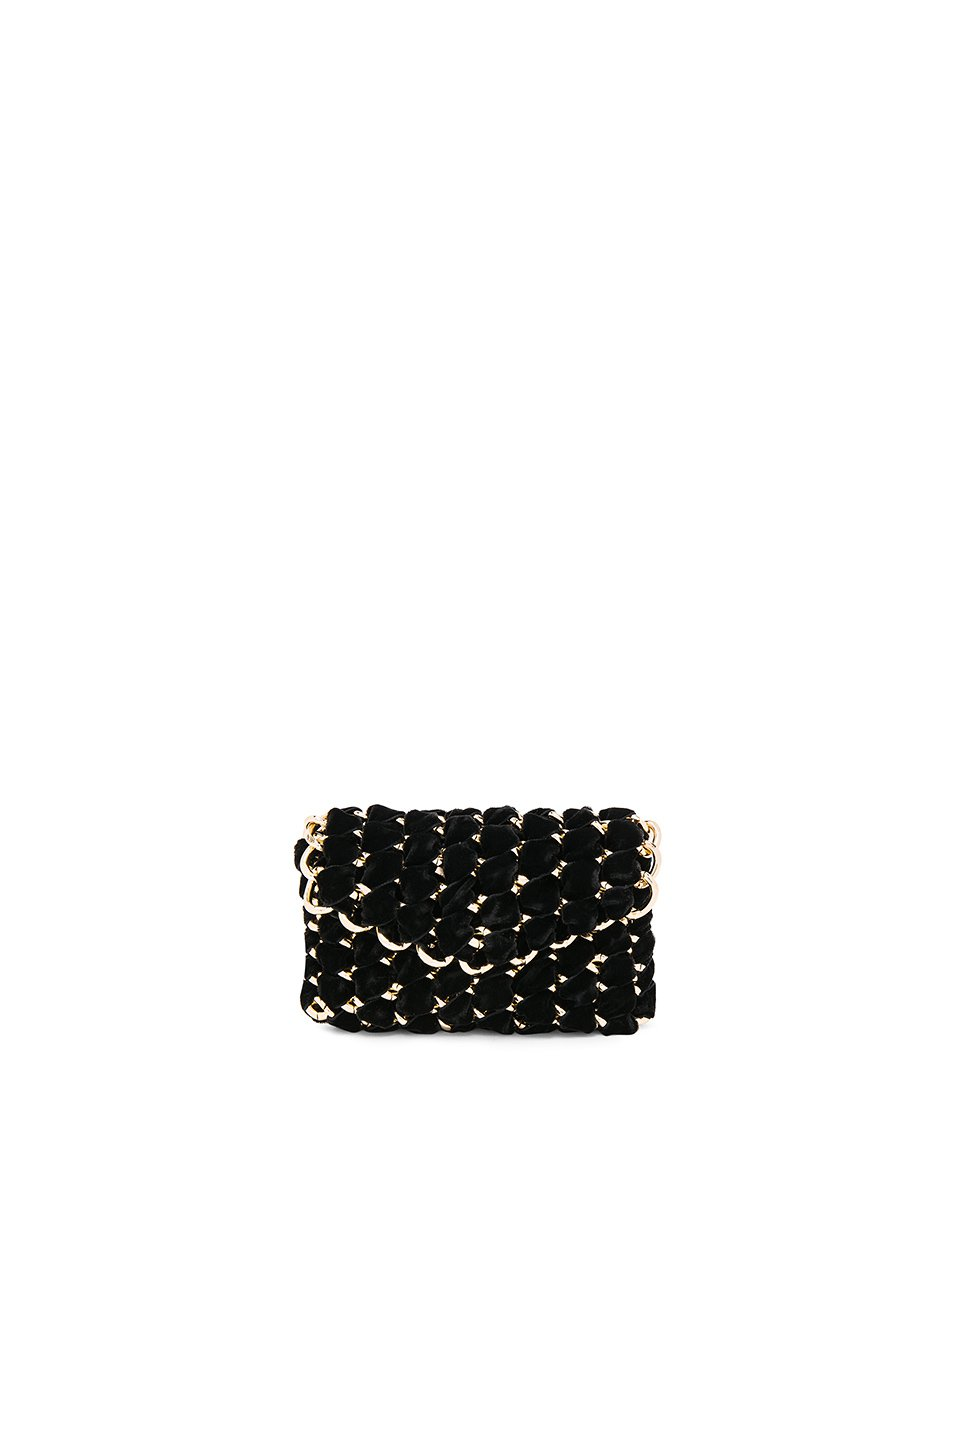 Micro Eve Velvet Clutch with Gold Chain